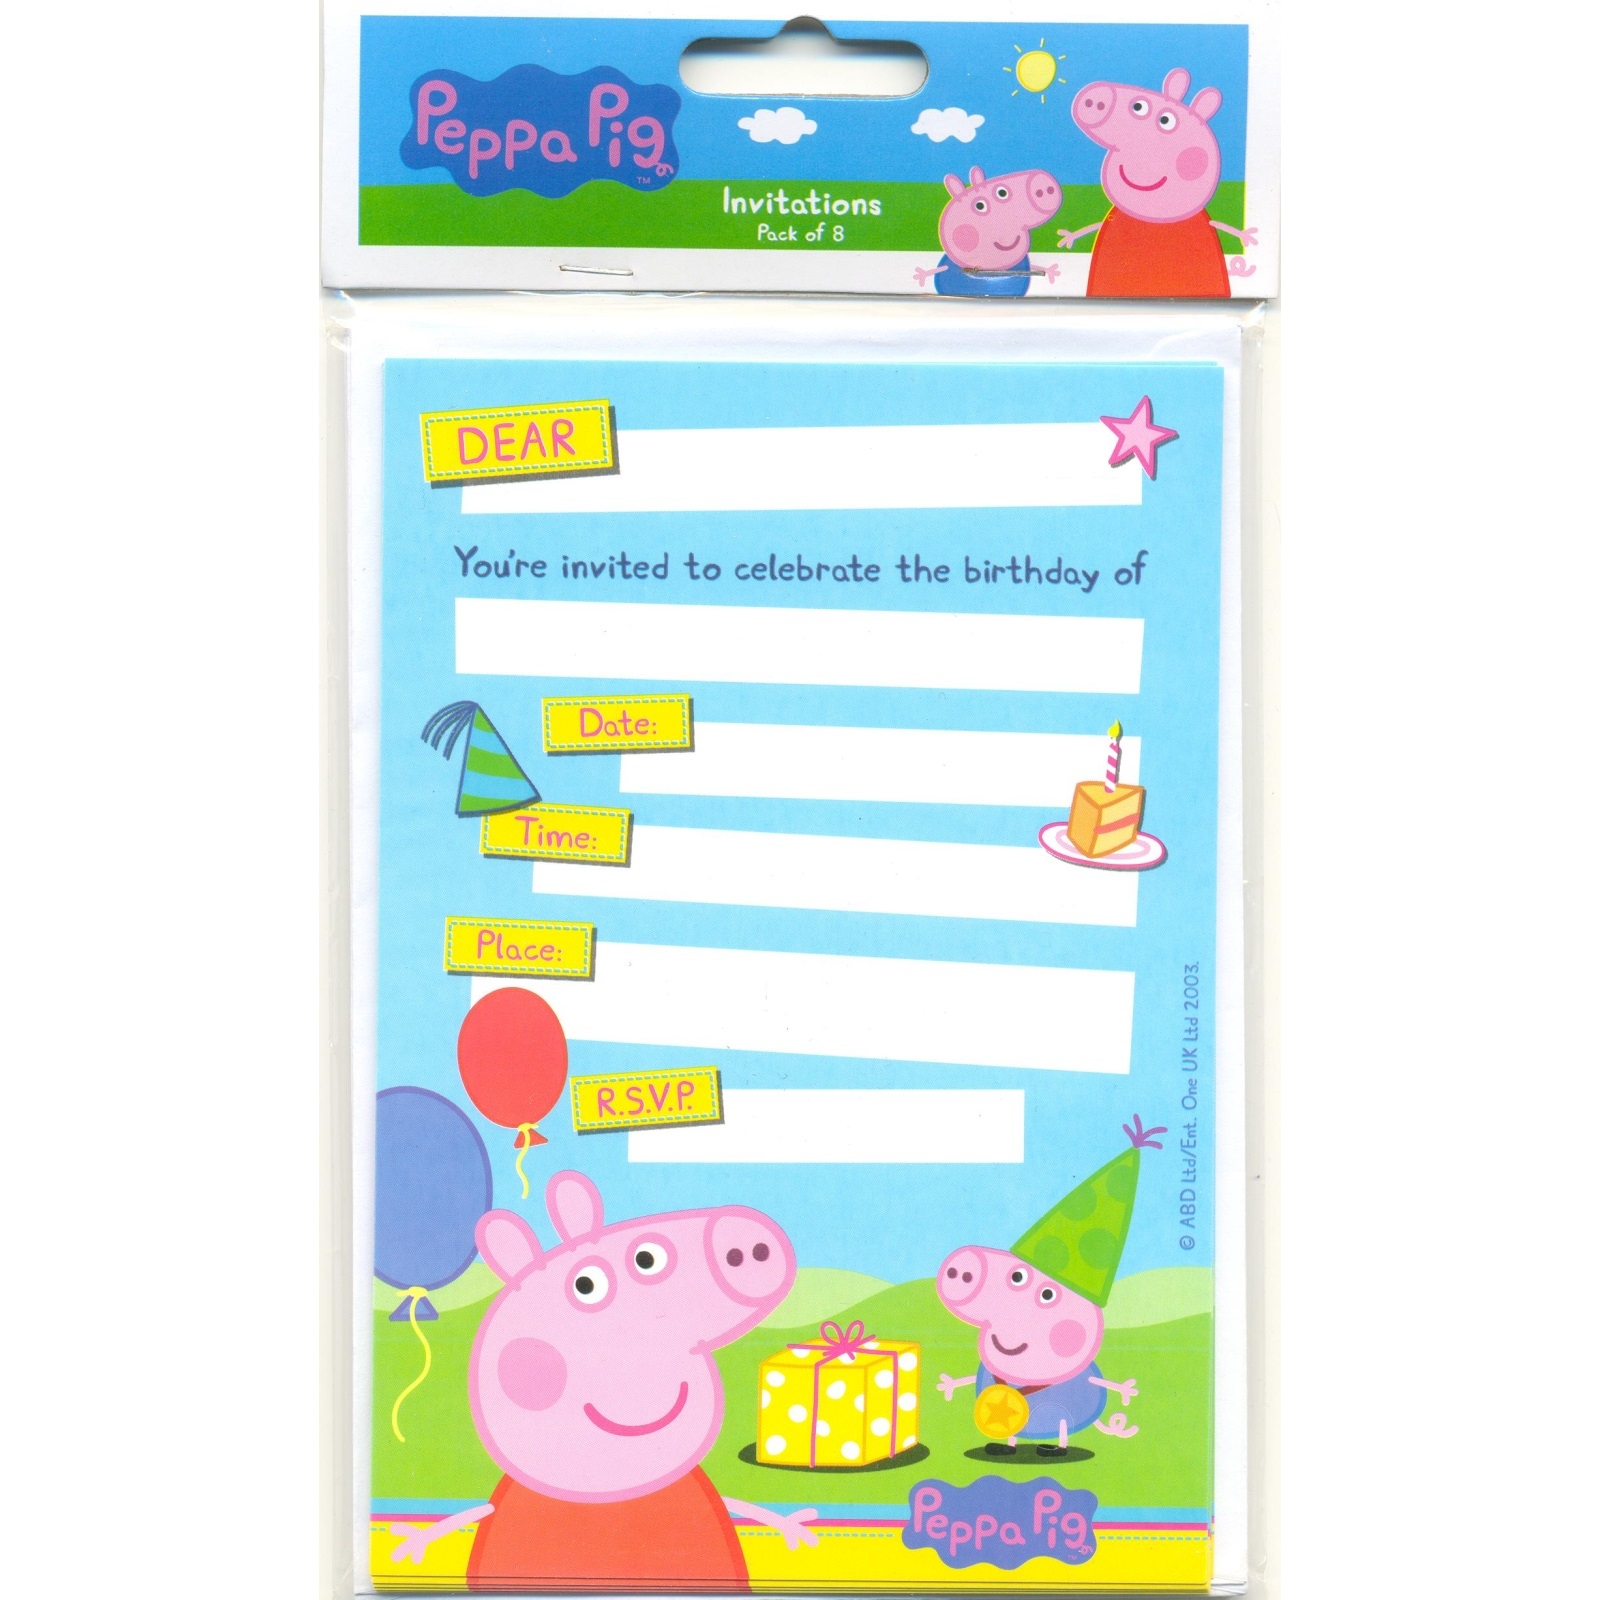 peppa pig birthday party invitation template free ; peppa-pig-party-invitations-peppa-pig-kids-party-supplies-8-invitations-and-envelopes-kids